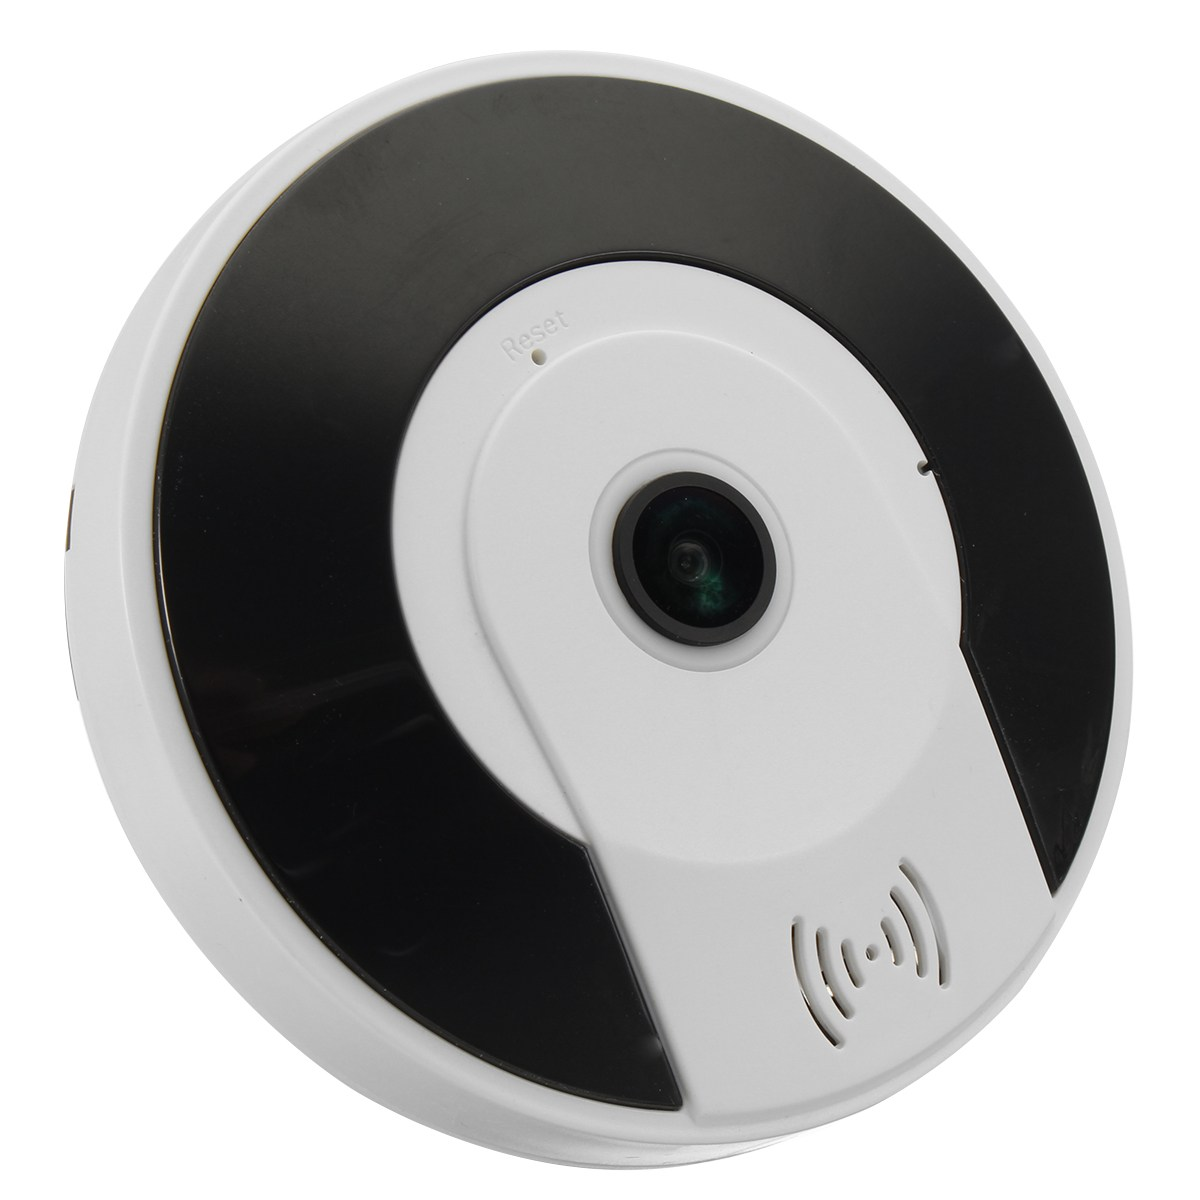 NEW Mini 360 degree 960P  Wireless HD Fisheye IP Camera Two Way Night Vision Wifi Panoramic Home Security Safety<br>